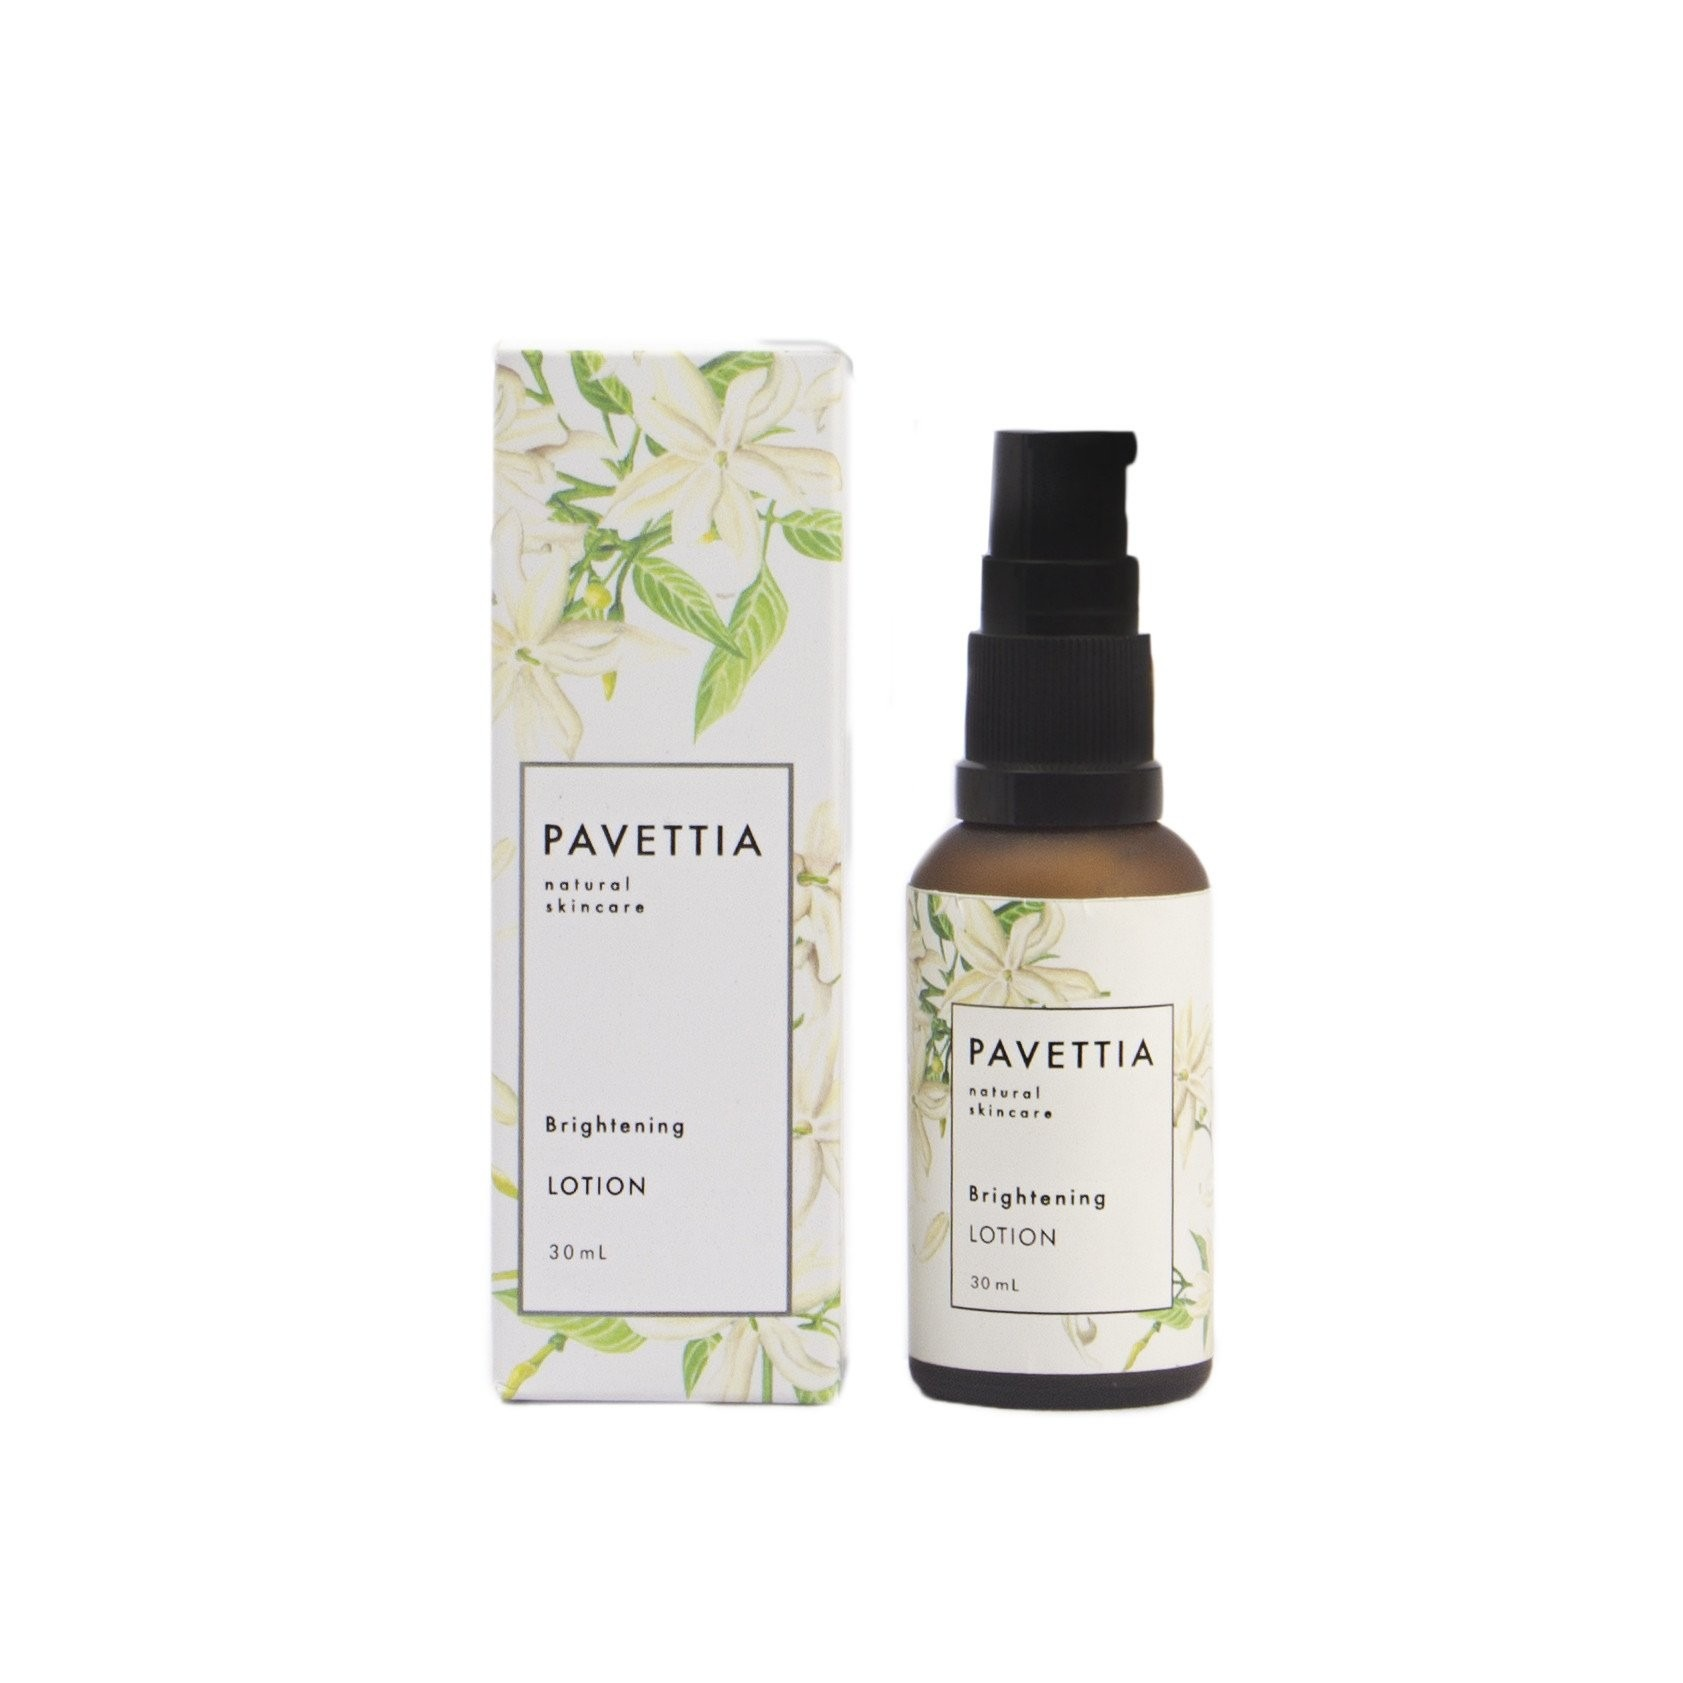 Pavettia Brightening Lotion